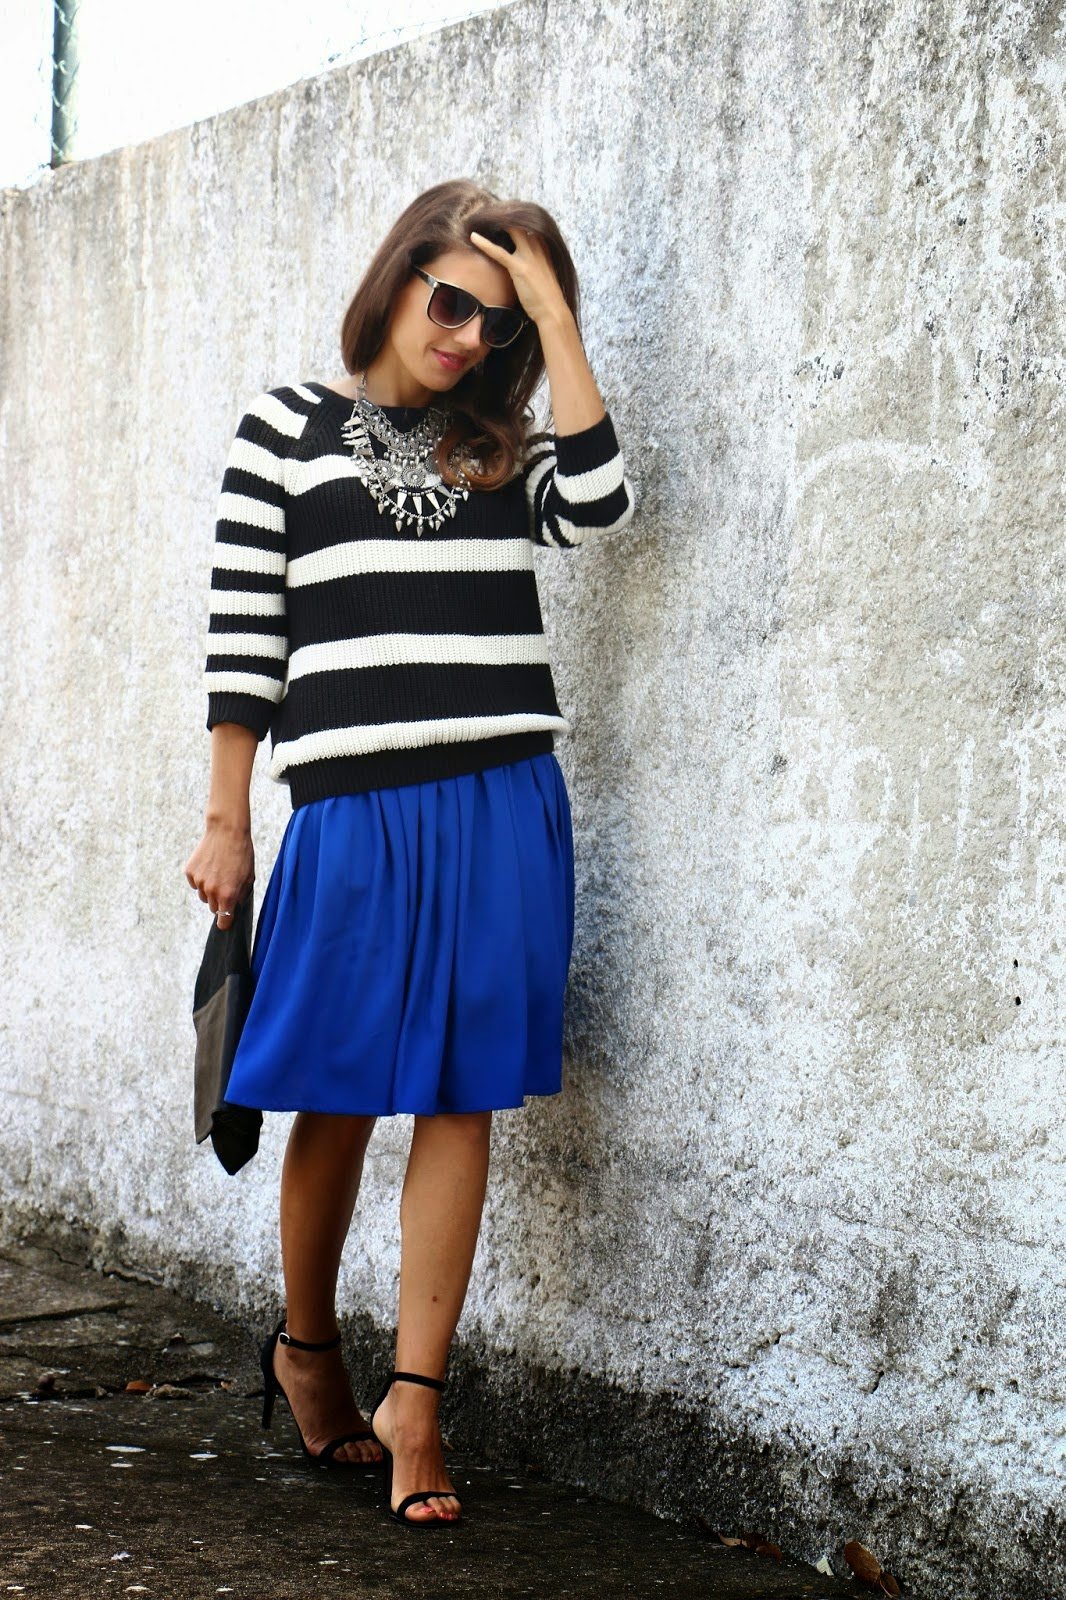 http://ilovefitametrica.blogspot.pt/2014/10/stripes-and-blue.html